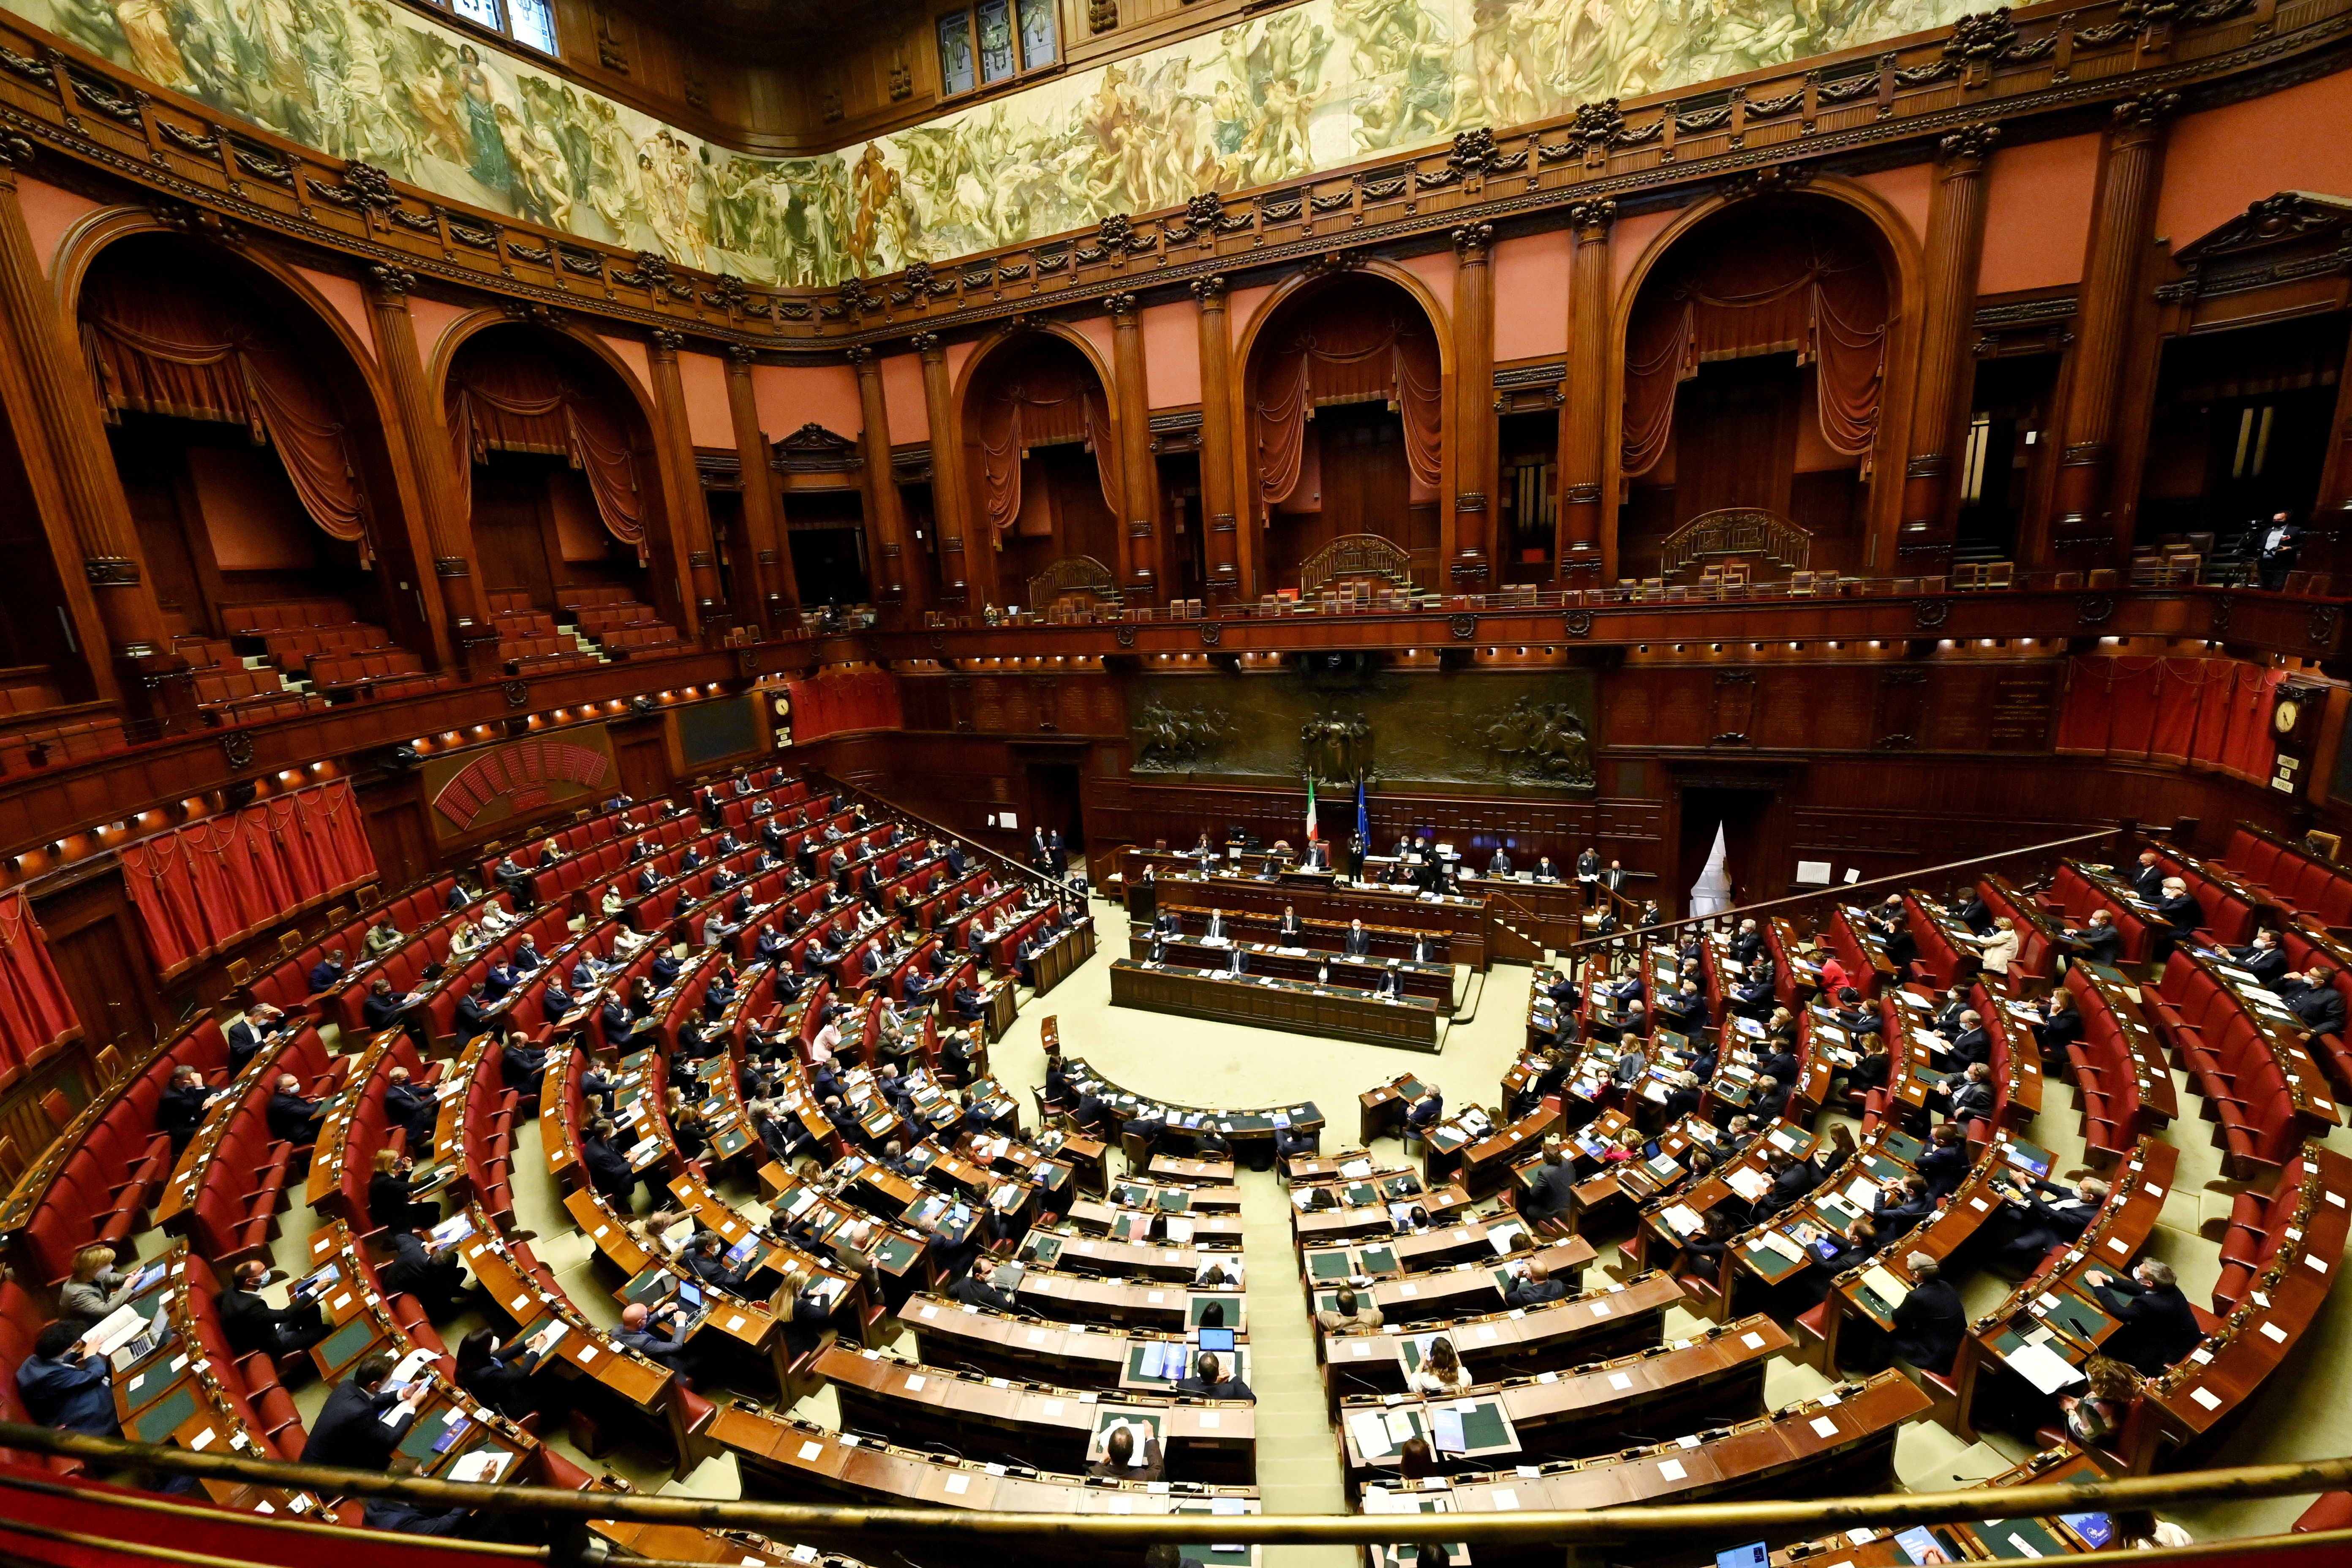 General view of the Italian Parliament as Prime Minister Mario Draghi addresses deputies on April 26, 2021 at Montecitorio palace in Rome with plans on how to spend EU recovery funds. Alberto Pizzoli/Pool via REUTERS